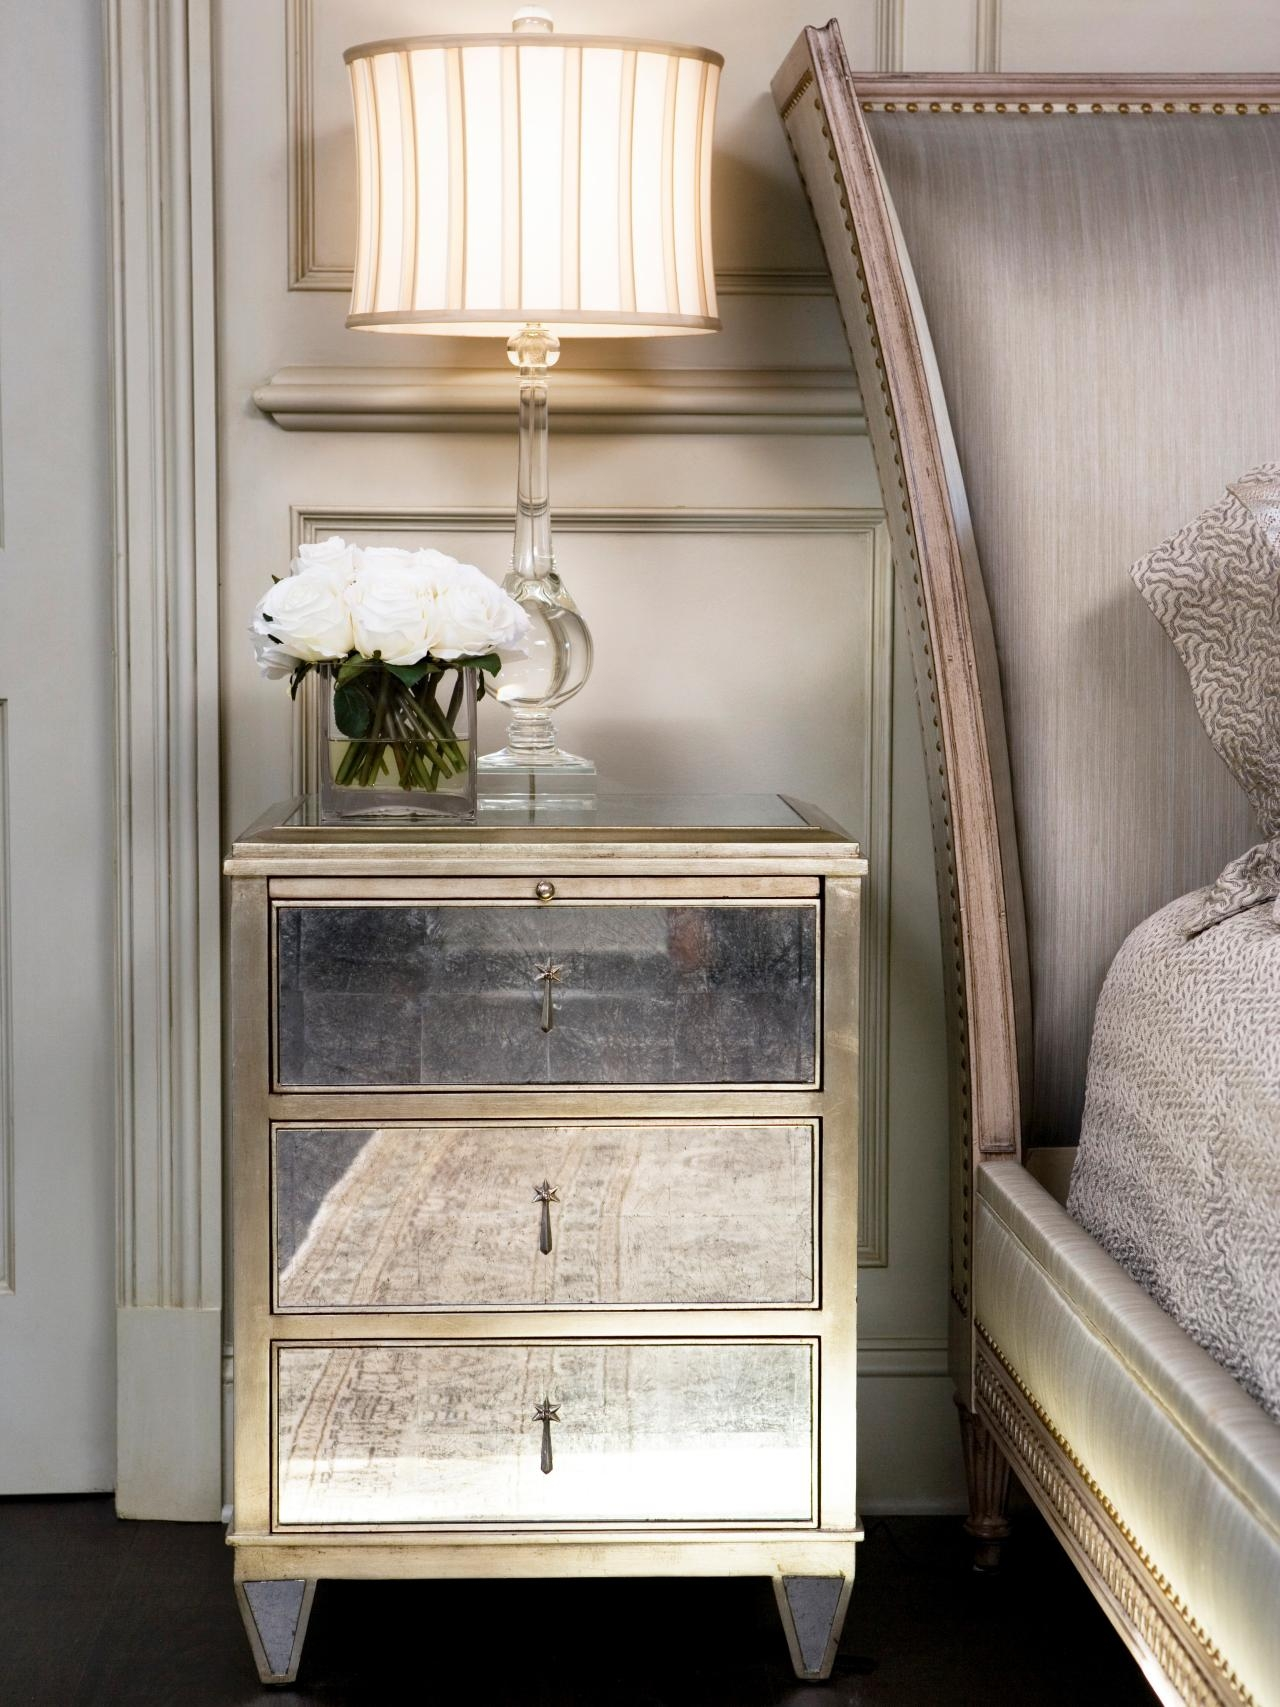 Old Style Antique 3 Drawer Mirrored Bedside Table With Brass Frame Inside Antique Mirrored Bedside Tables (Image 15 of 15)